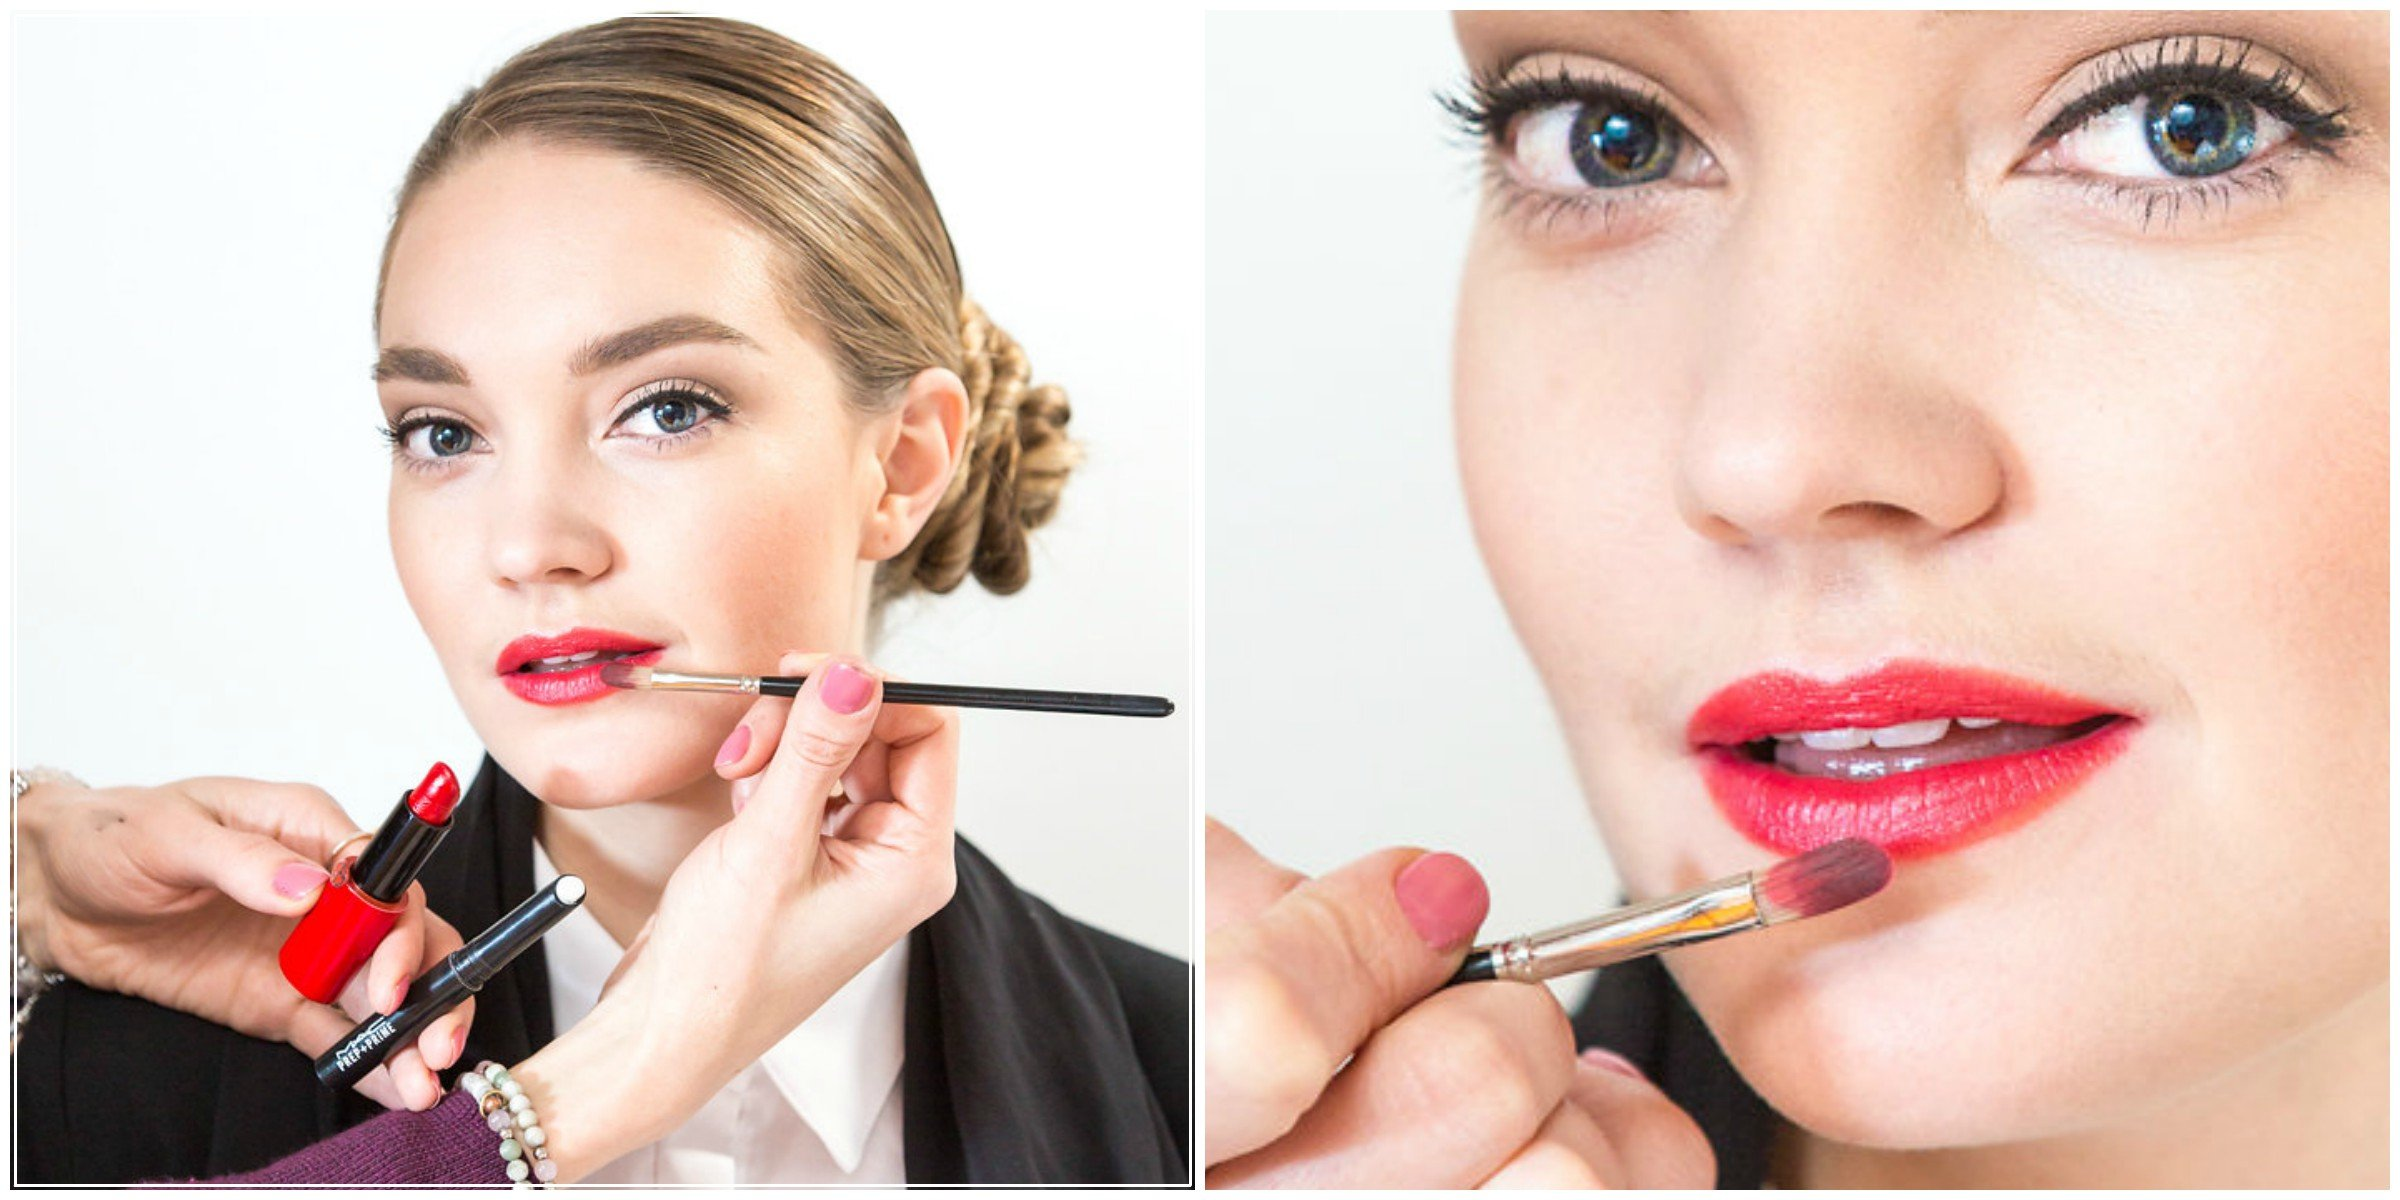 How to apply red lipstick for a professional makeup look for work with red lips and classic eye created by Klava Z Ottawa makeup artist